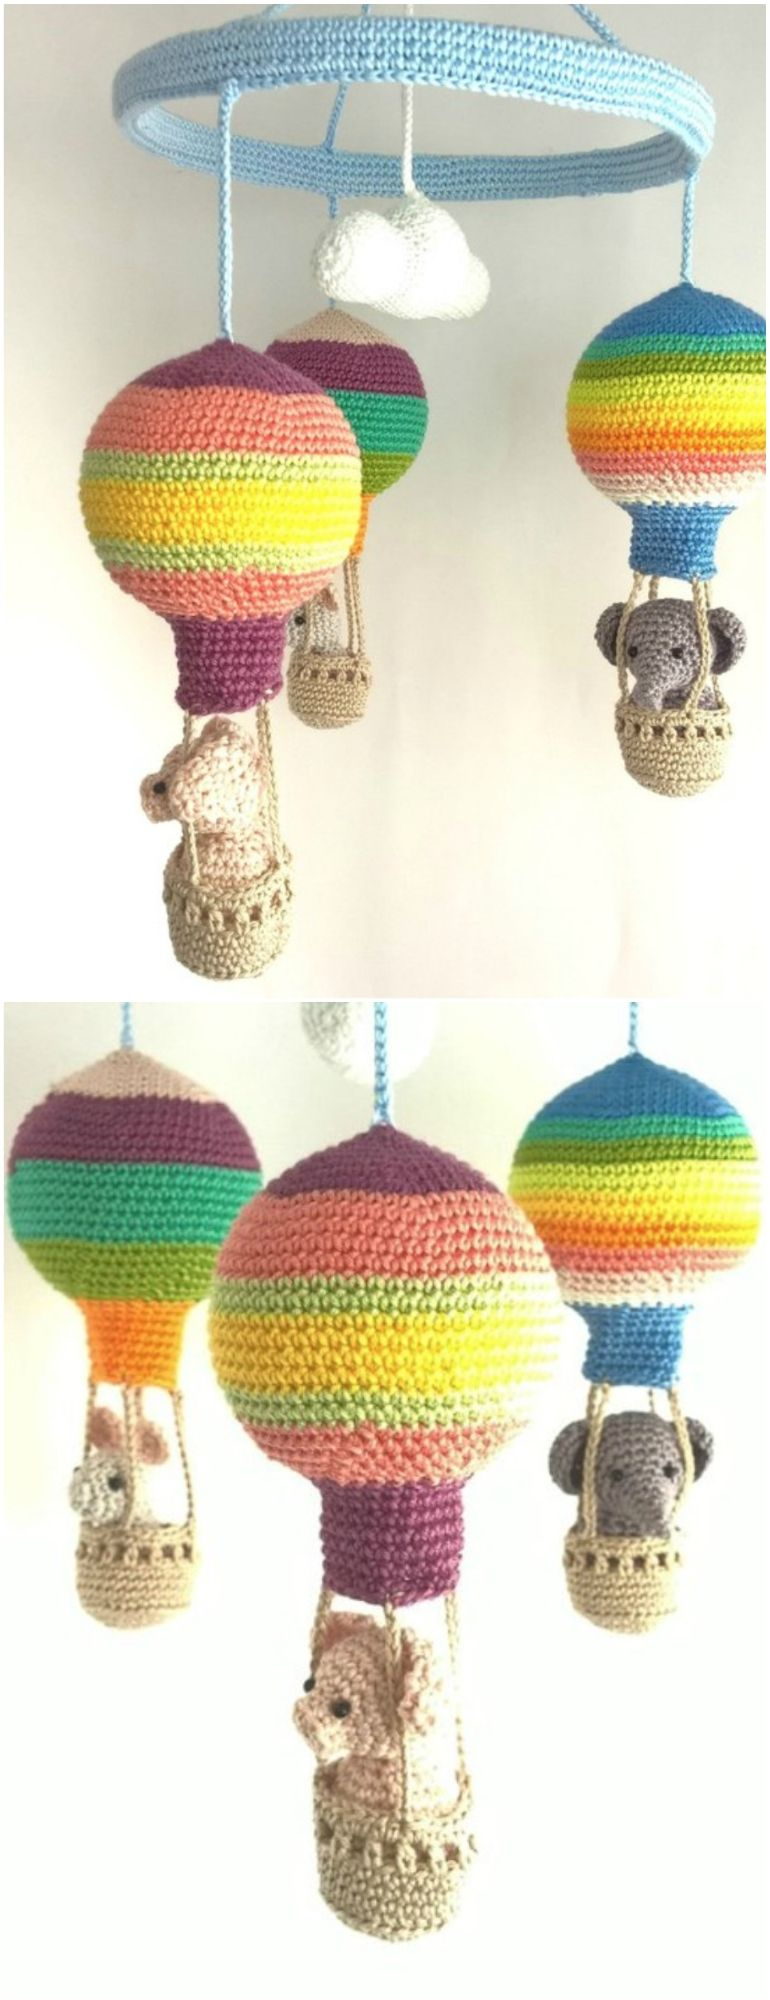 You Will Love This Crochet Baby Hot Air Balloon Mobile